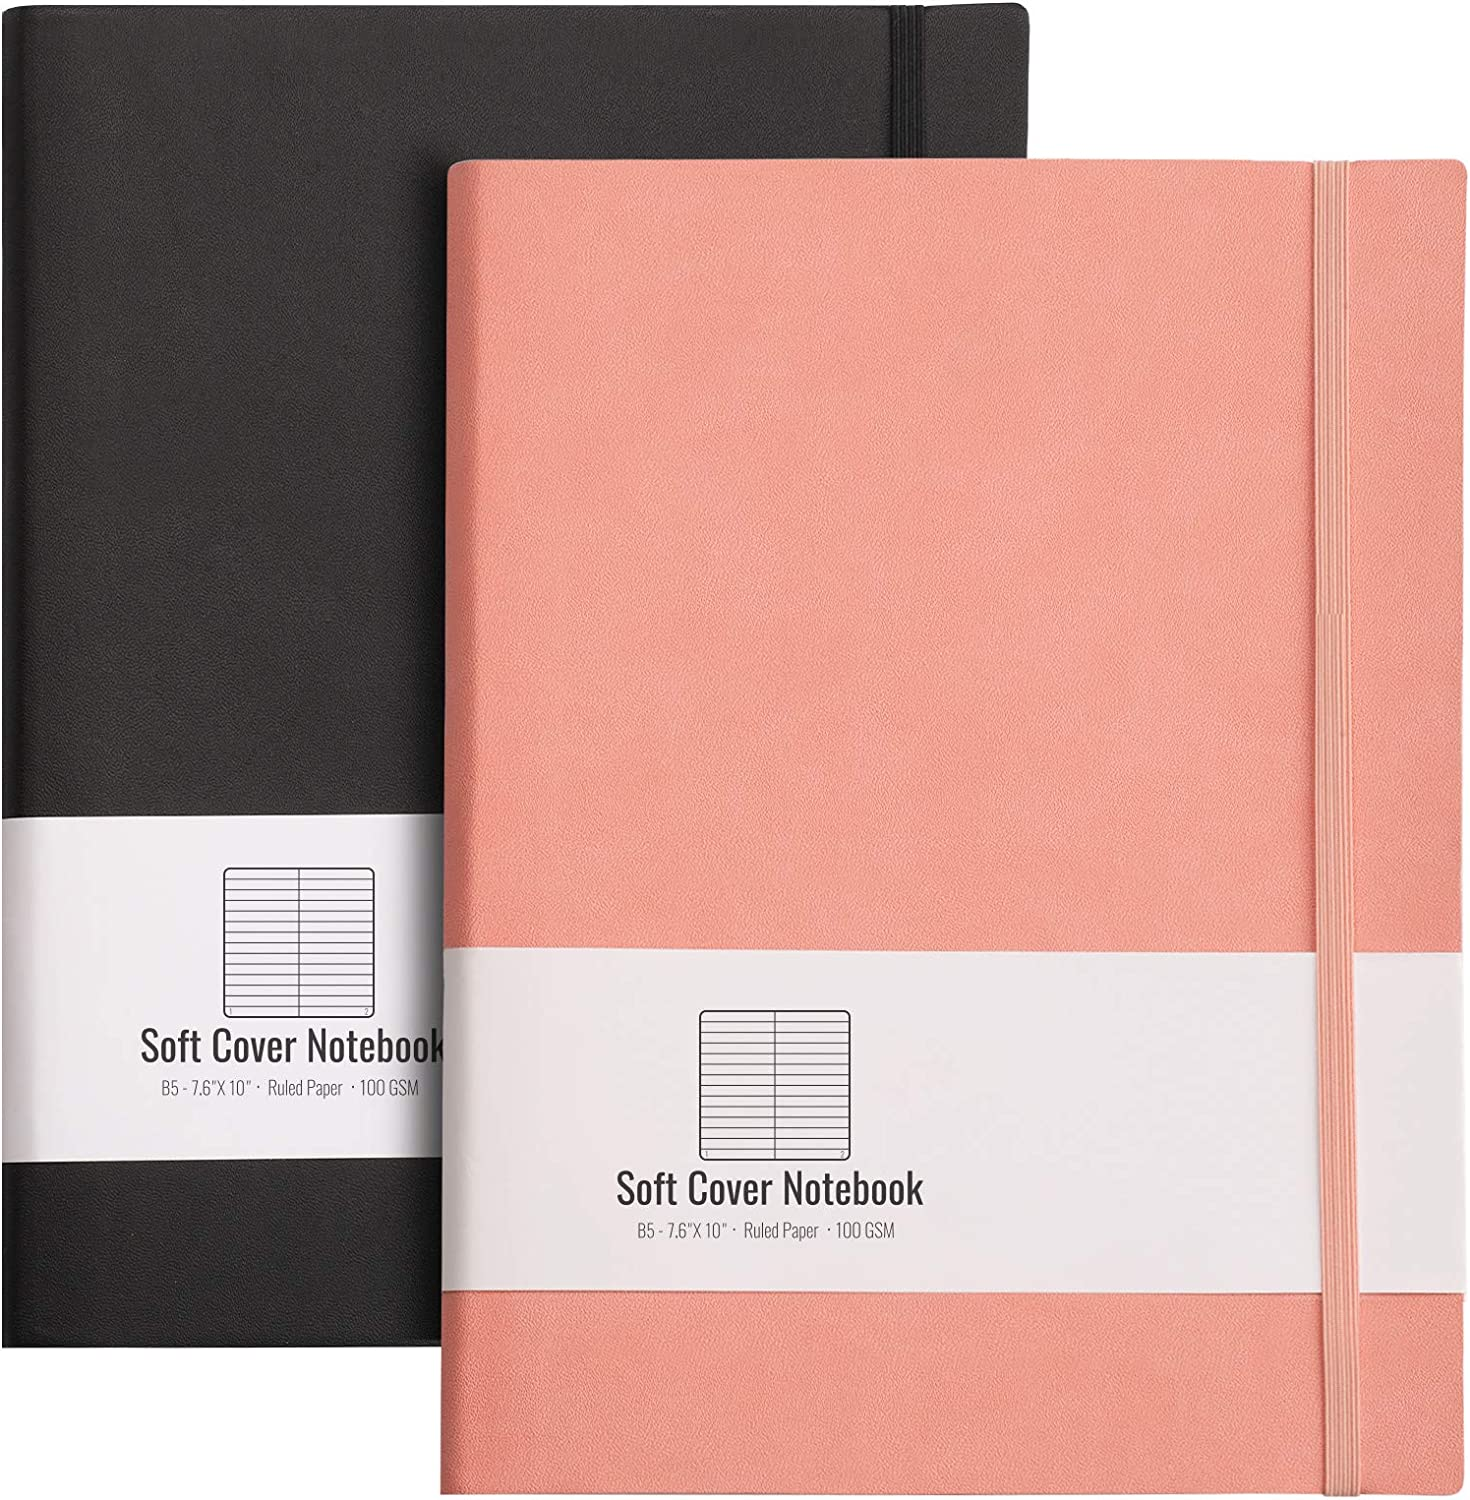 RETTACY Journals to Write in for Women 2 Pack- B5 Large Journal Notebook with Soft Leather Cover,100gsm Thick Lined Paper,408 Pages,7.6 X 10